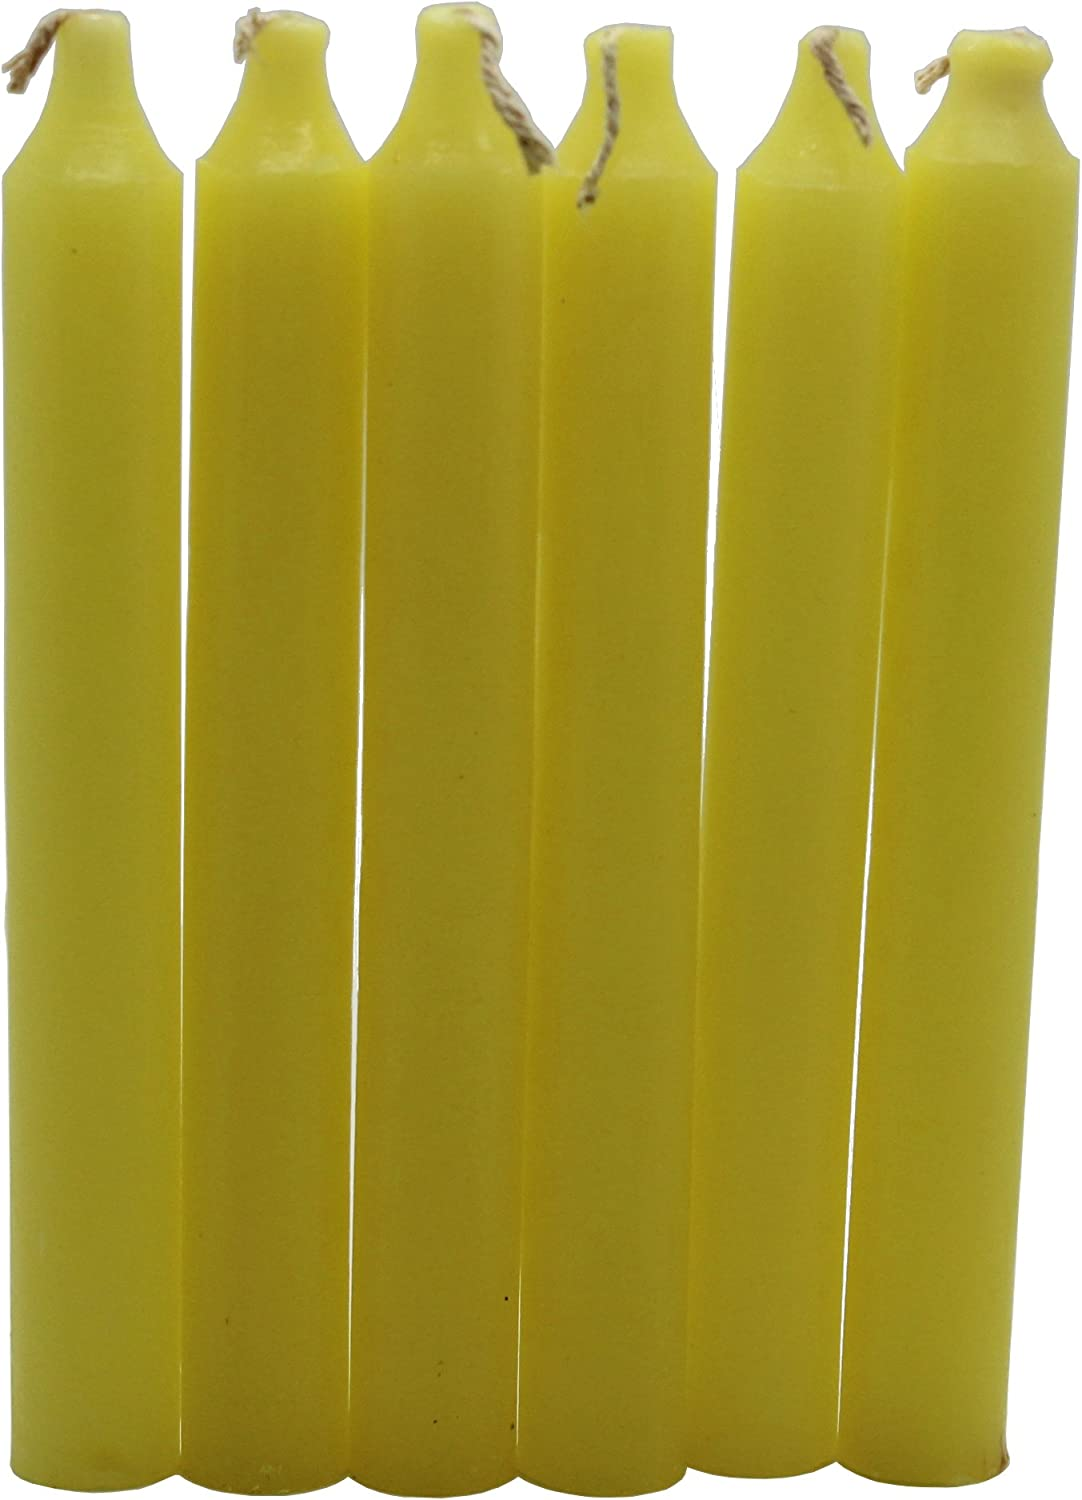 Govinda Max 47% OFF - Taper Candle 6 Yellow Inch of Pack 36 excellence